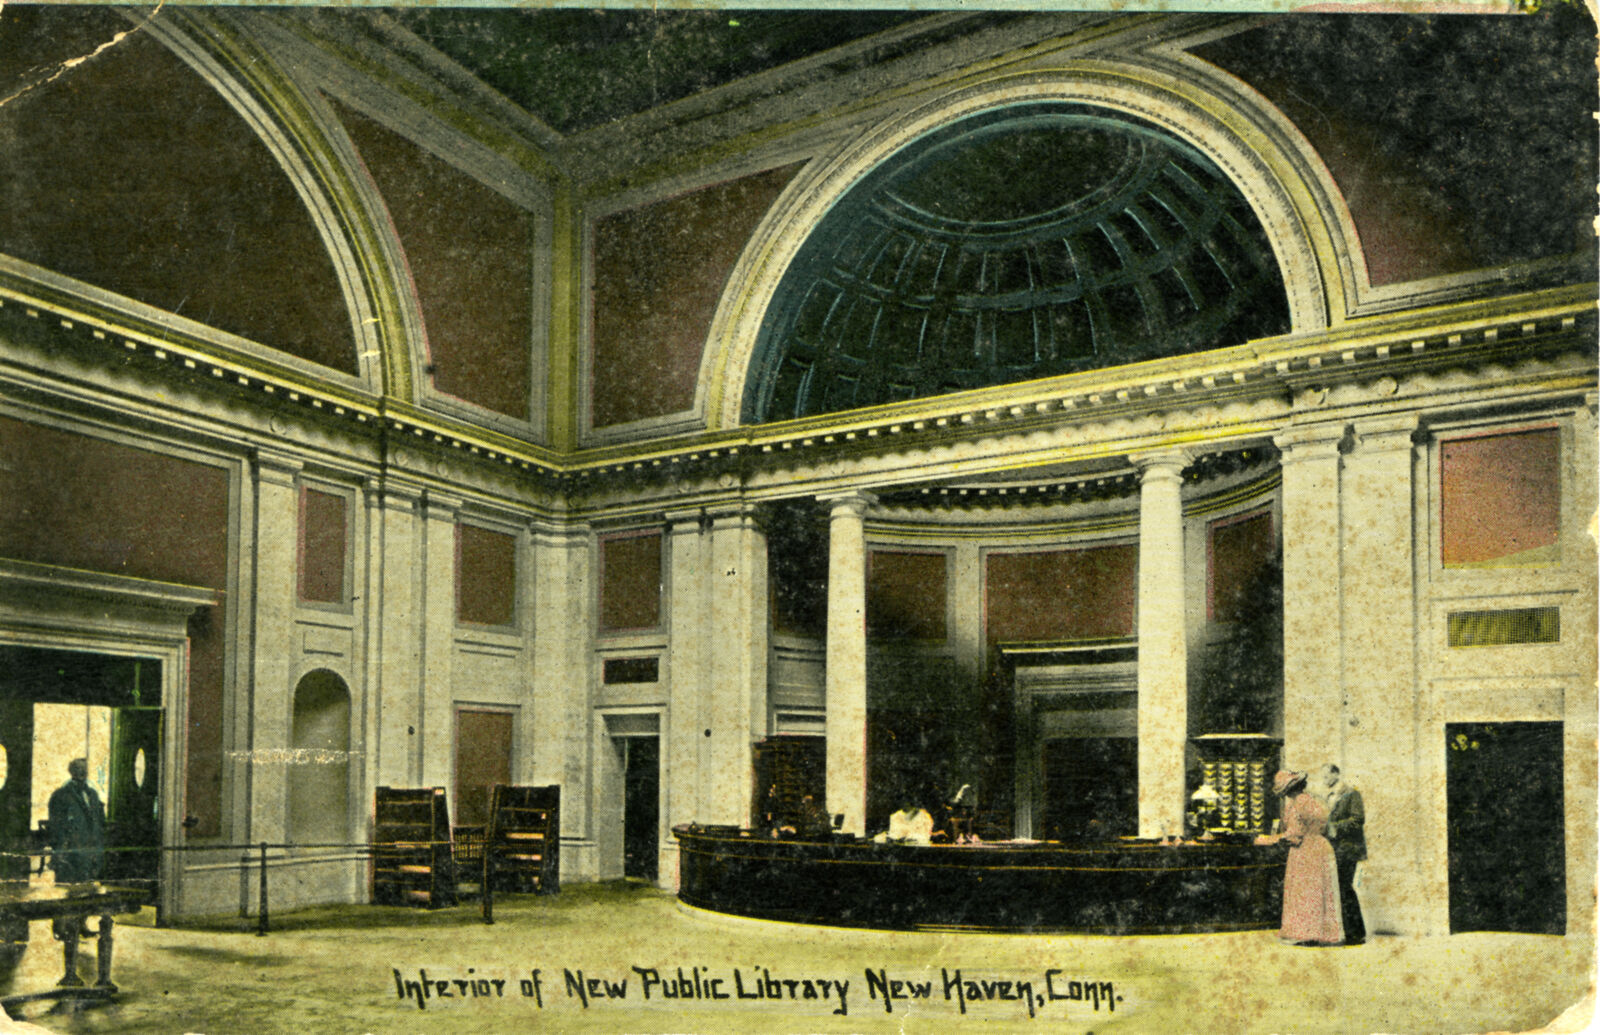 Interior of New Public Library, New Haven, Connecticut